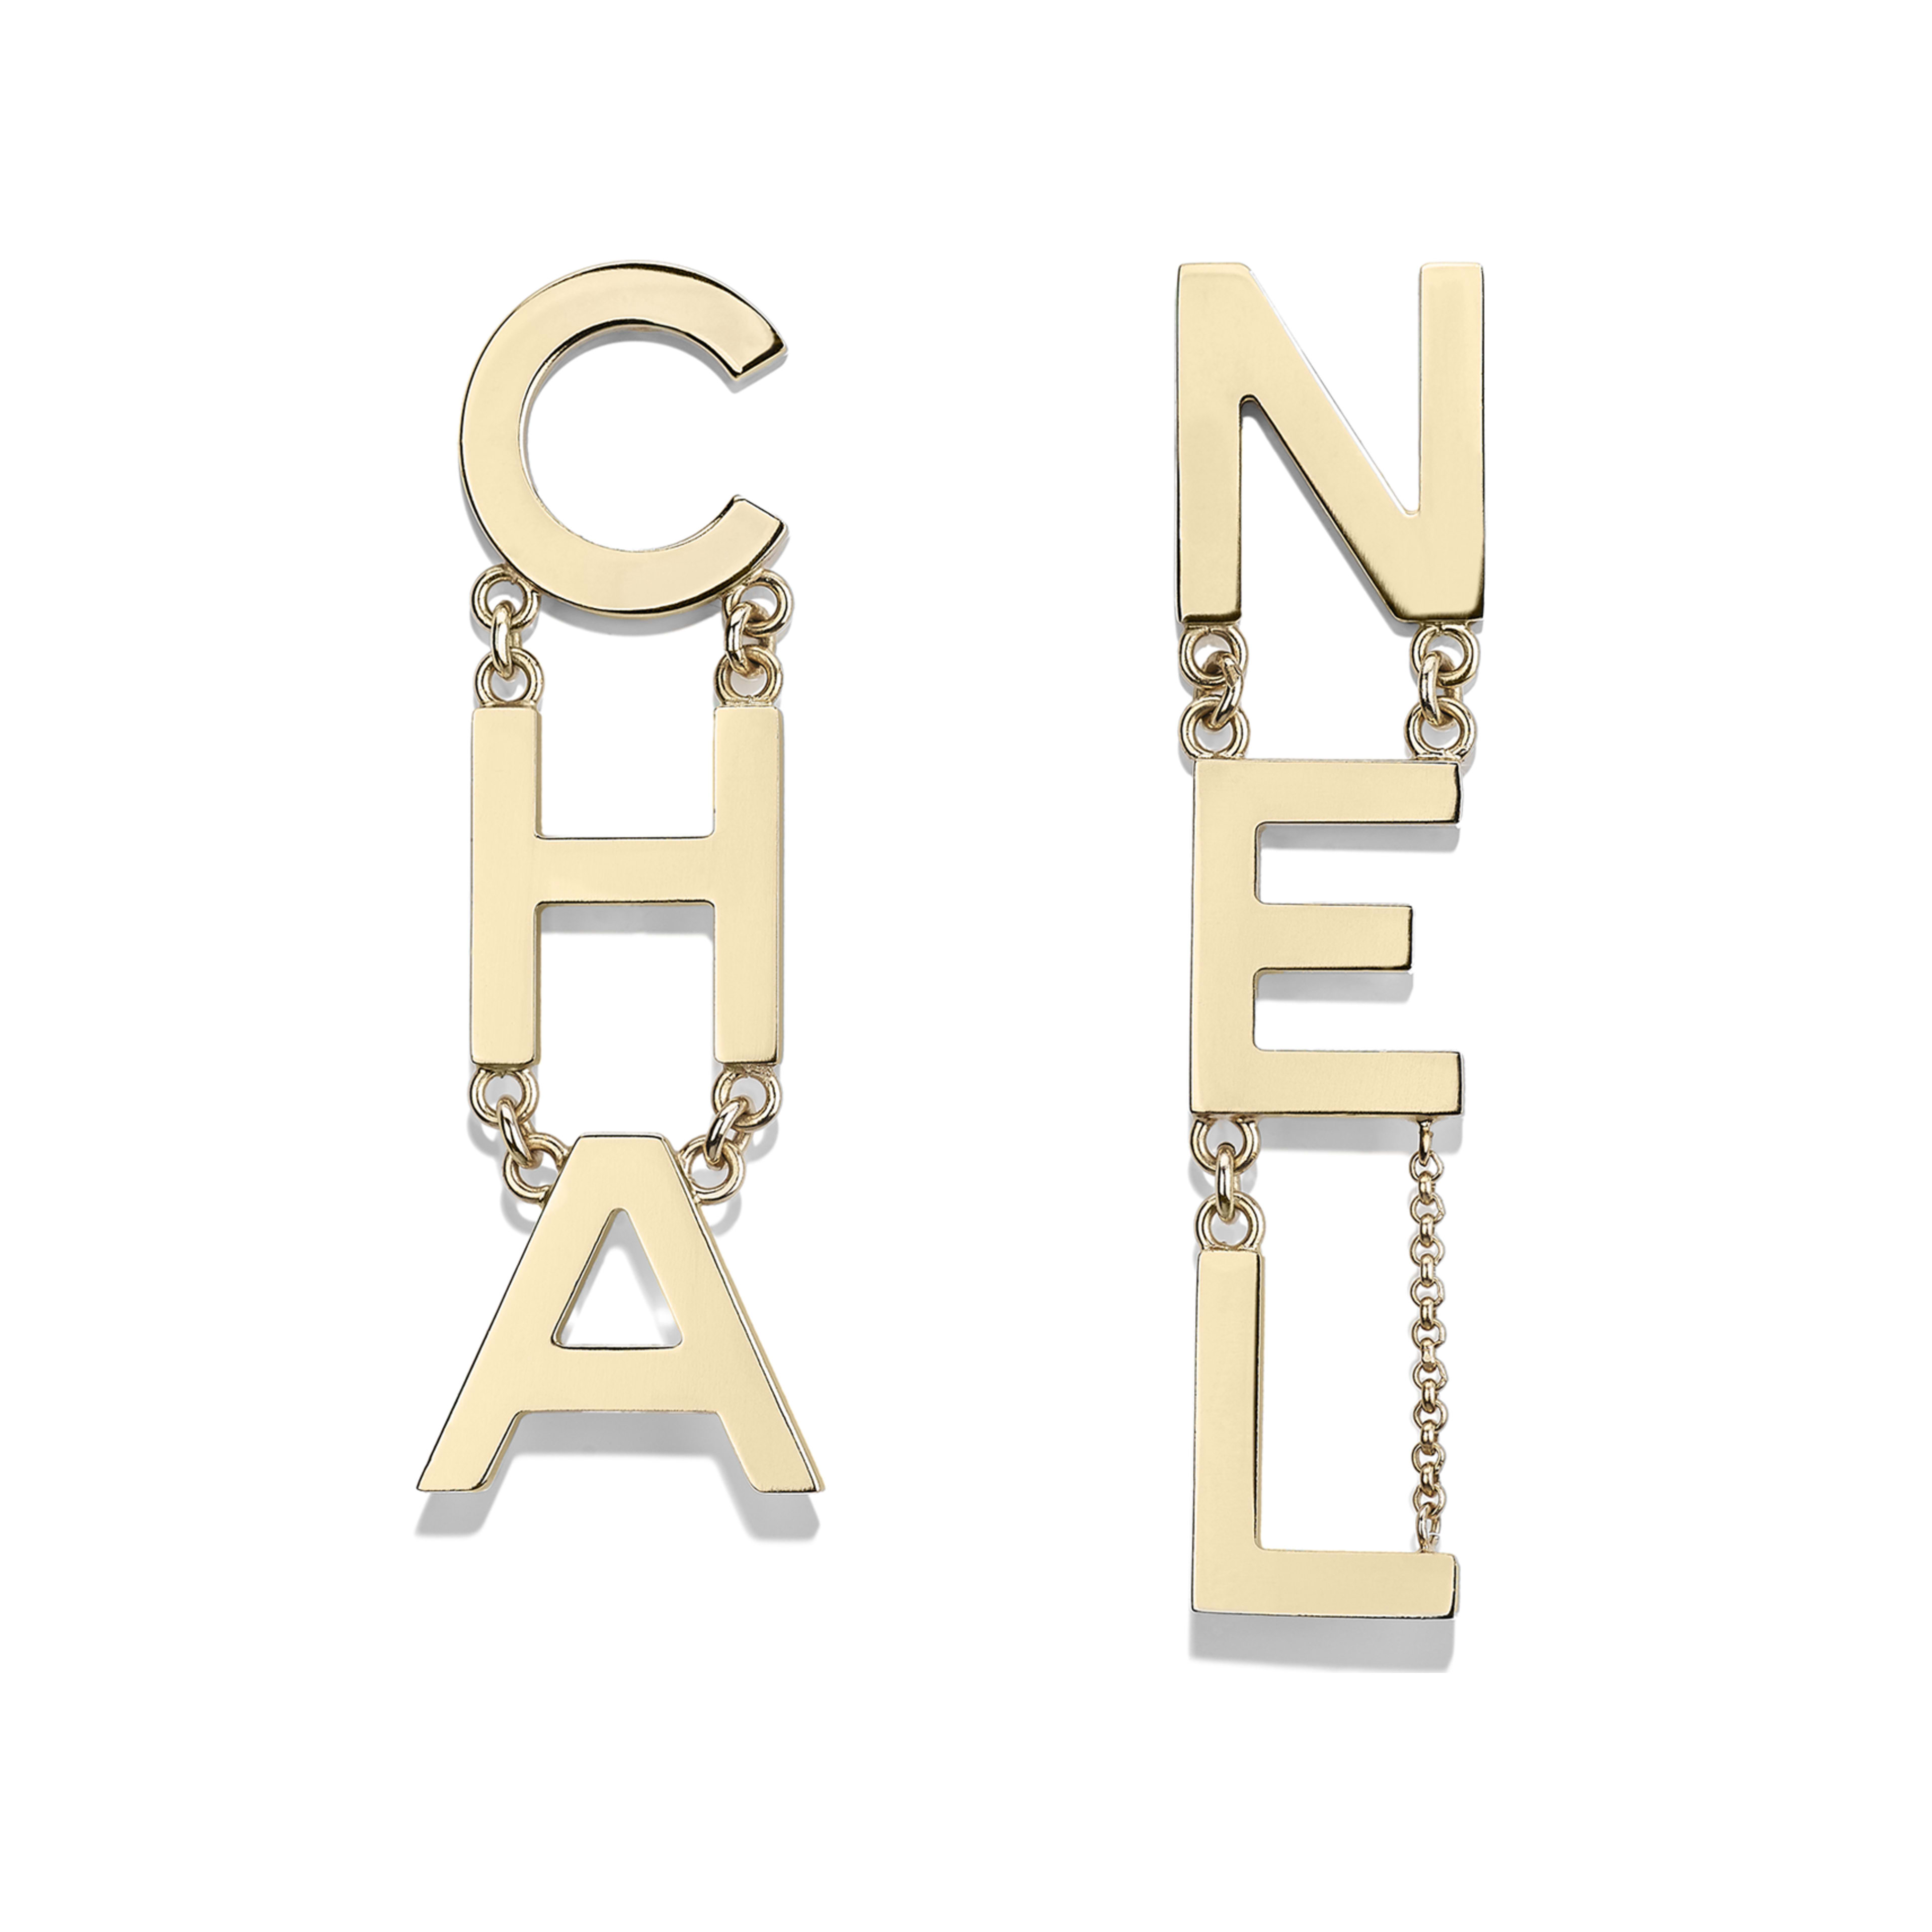 Earrings - Gold - Metal - Default view - see full sized version